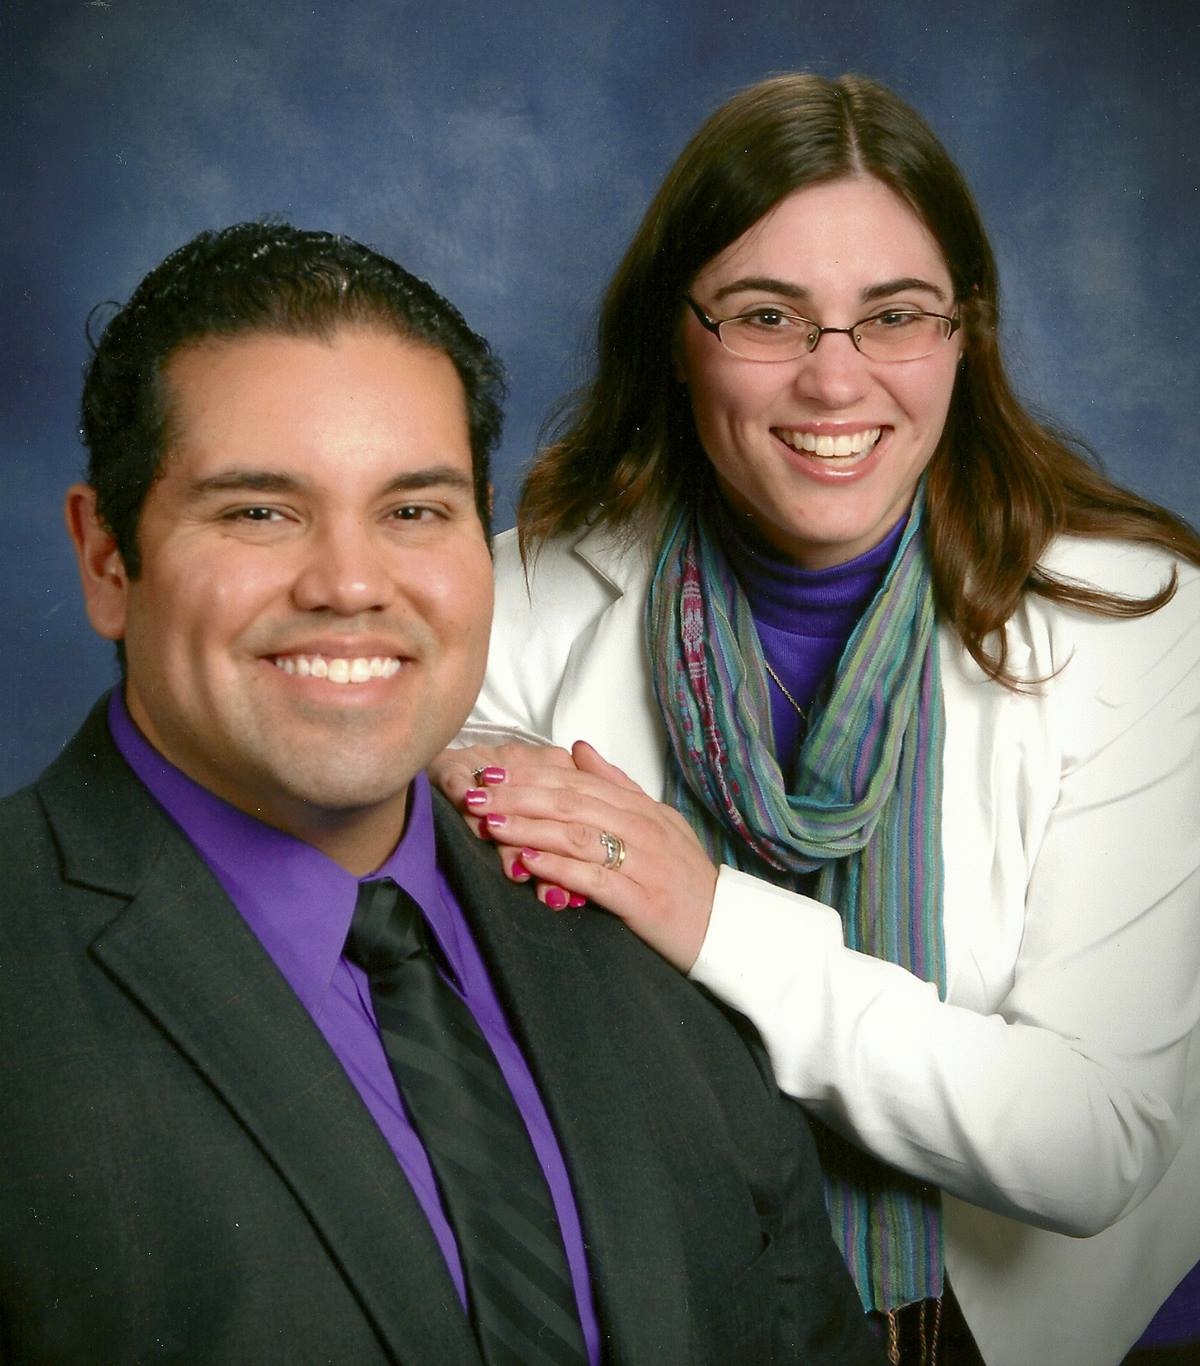 The Rev. Bonnie McCubbin is pastor of Good Shepherd United Methodist Church in Baltimore and also serves as a police chaplain. She is pictured with her husband, the Rev. Lemuel Dominguez, pastor at Bethany United Methodist Church in Ellicott City, Maryland.